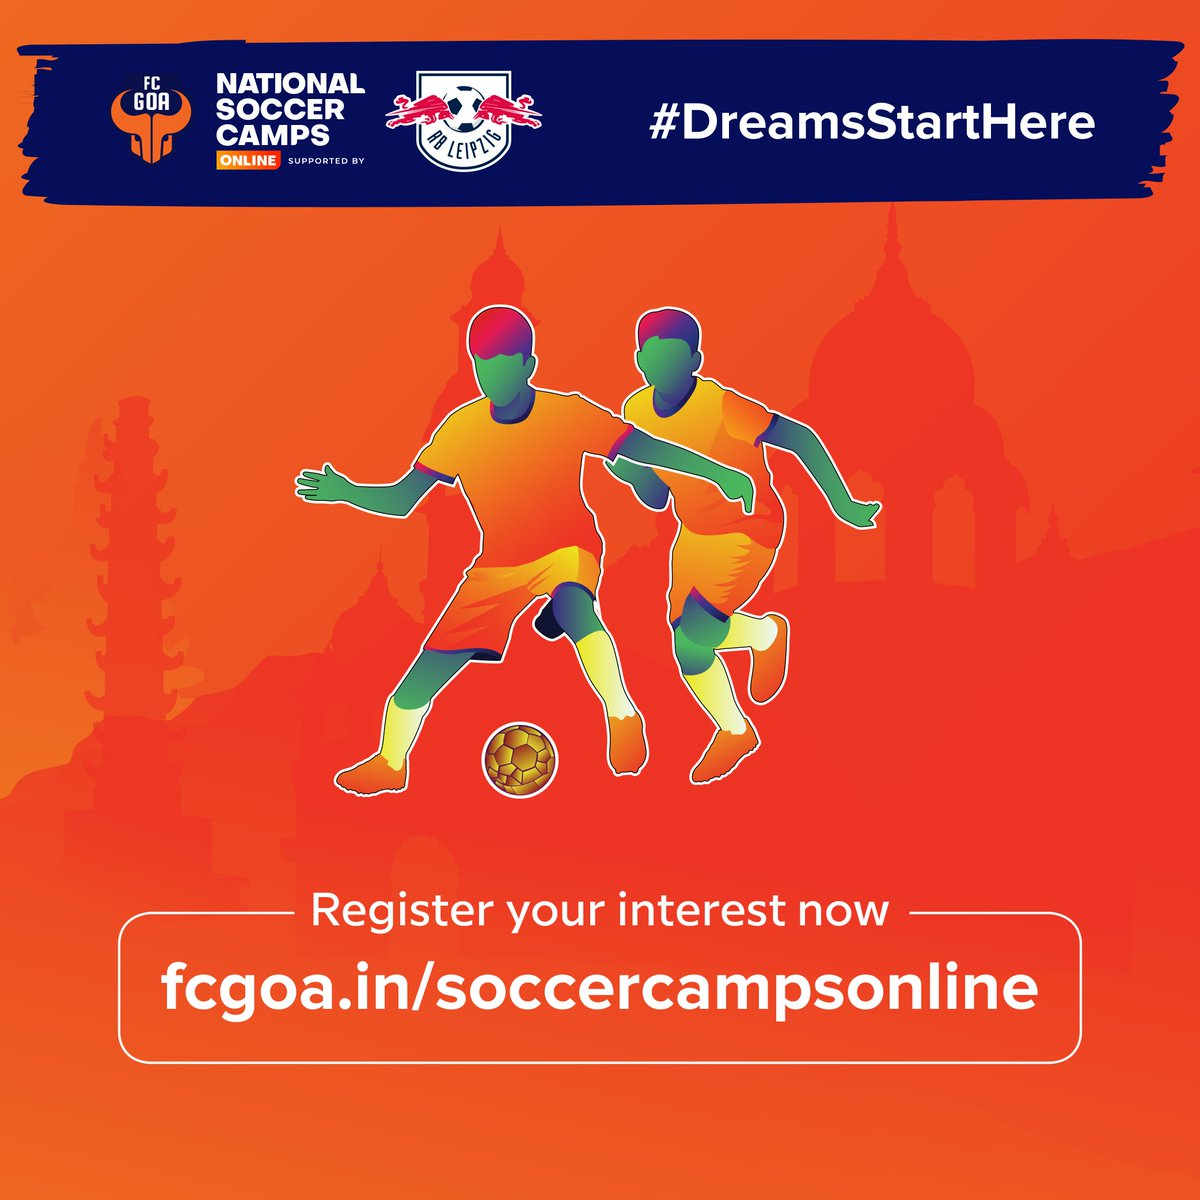 The registrations for our online Soccer Camps, supported by @RBLeipzig_EN, is now live! 💪🏻  Get trained by the top coaches from India & Germany and take that next step in realising your dream! 🤩  So hurry, register now at   #DreamsStartHere #RiseAgain